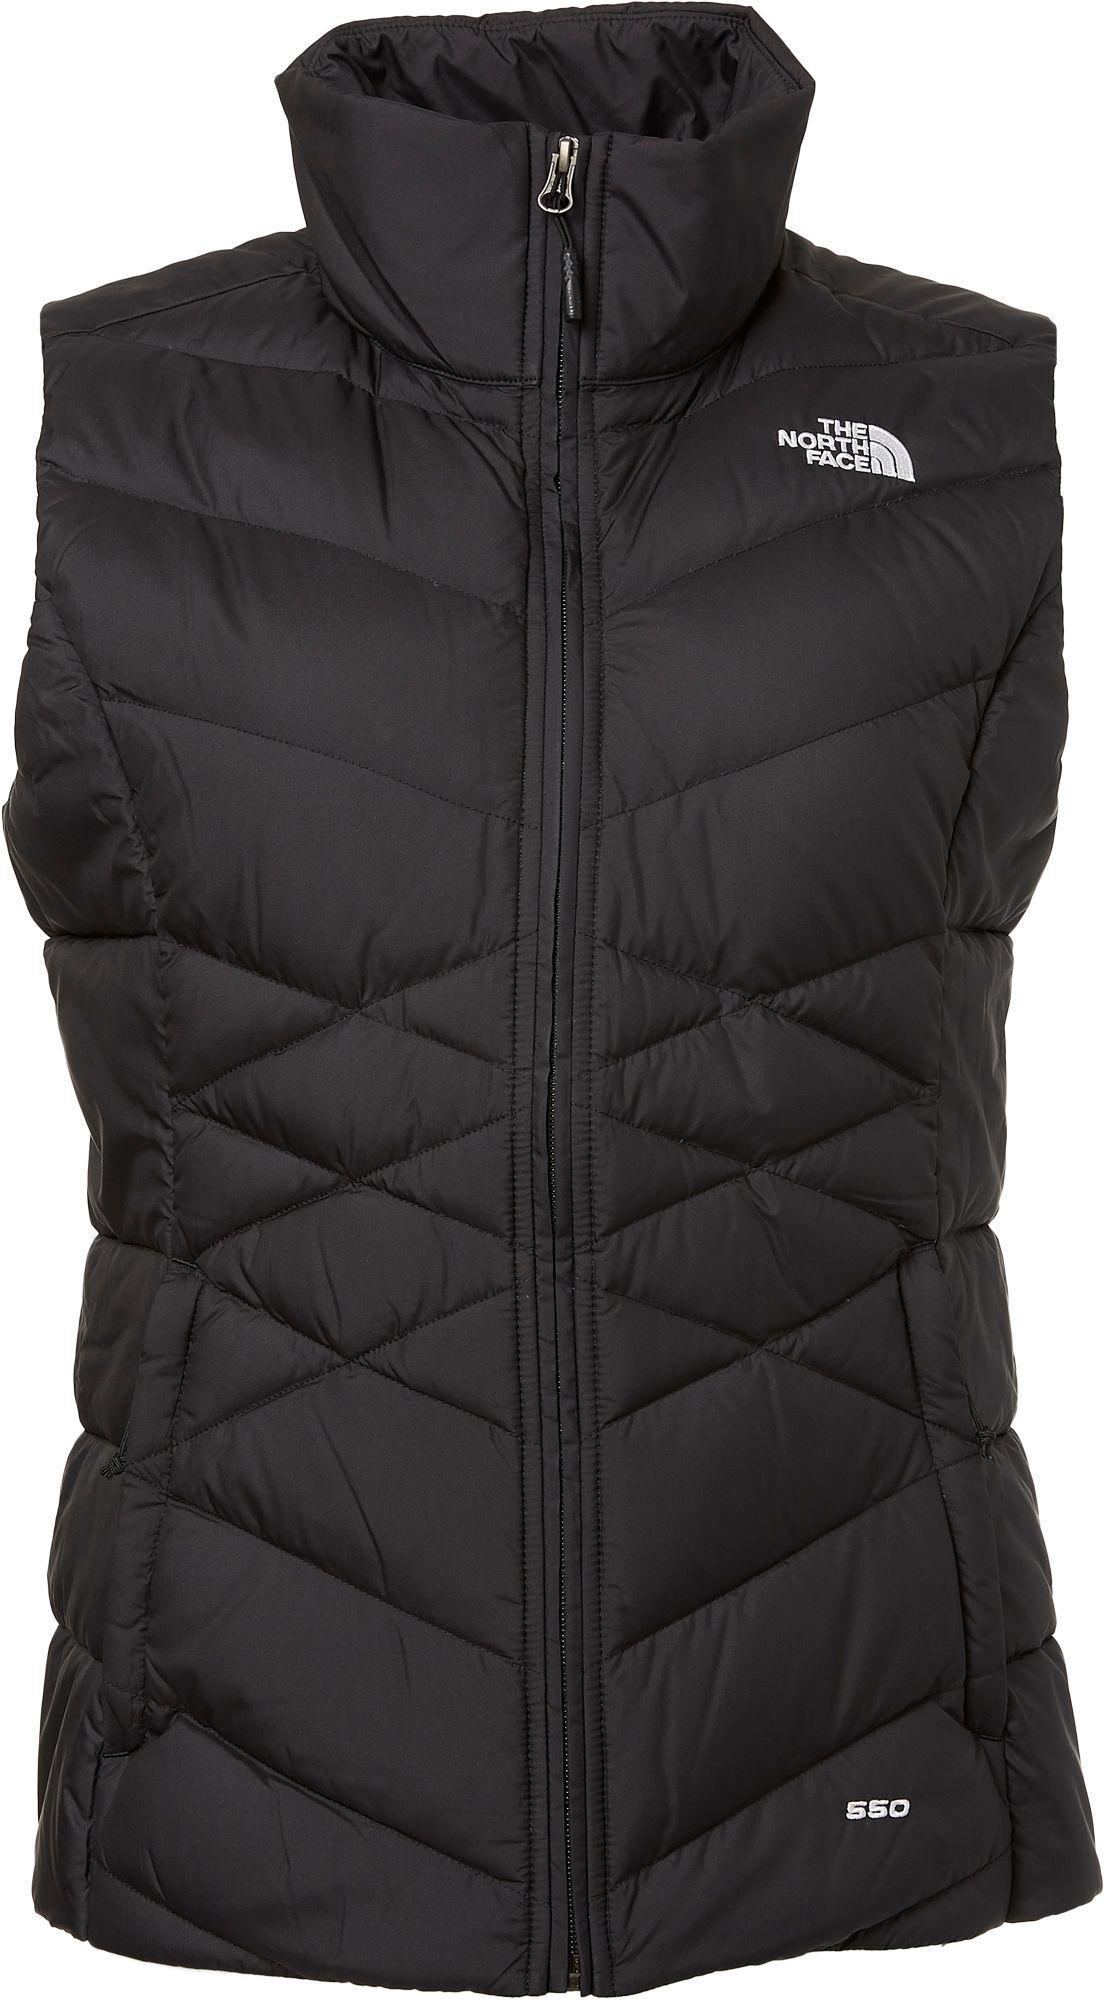 a3608d51777 The North Face Black Alpz Down Vest